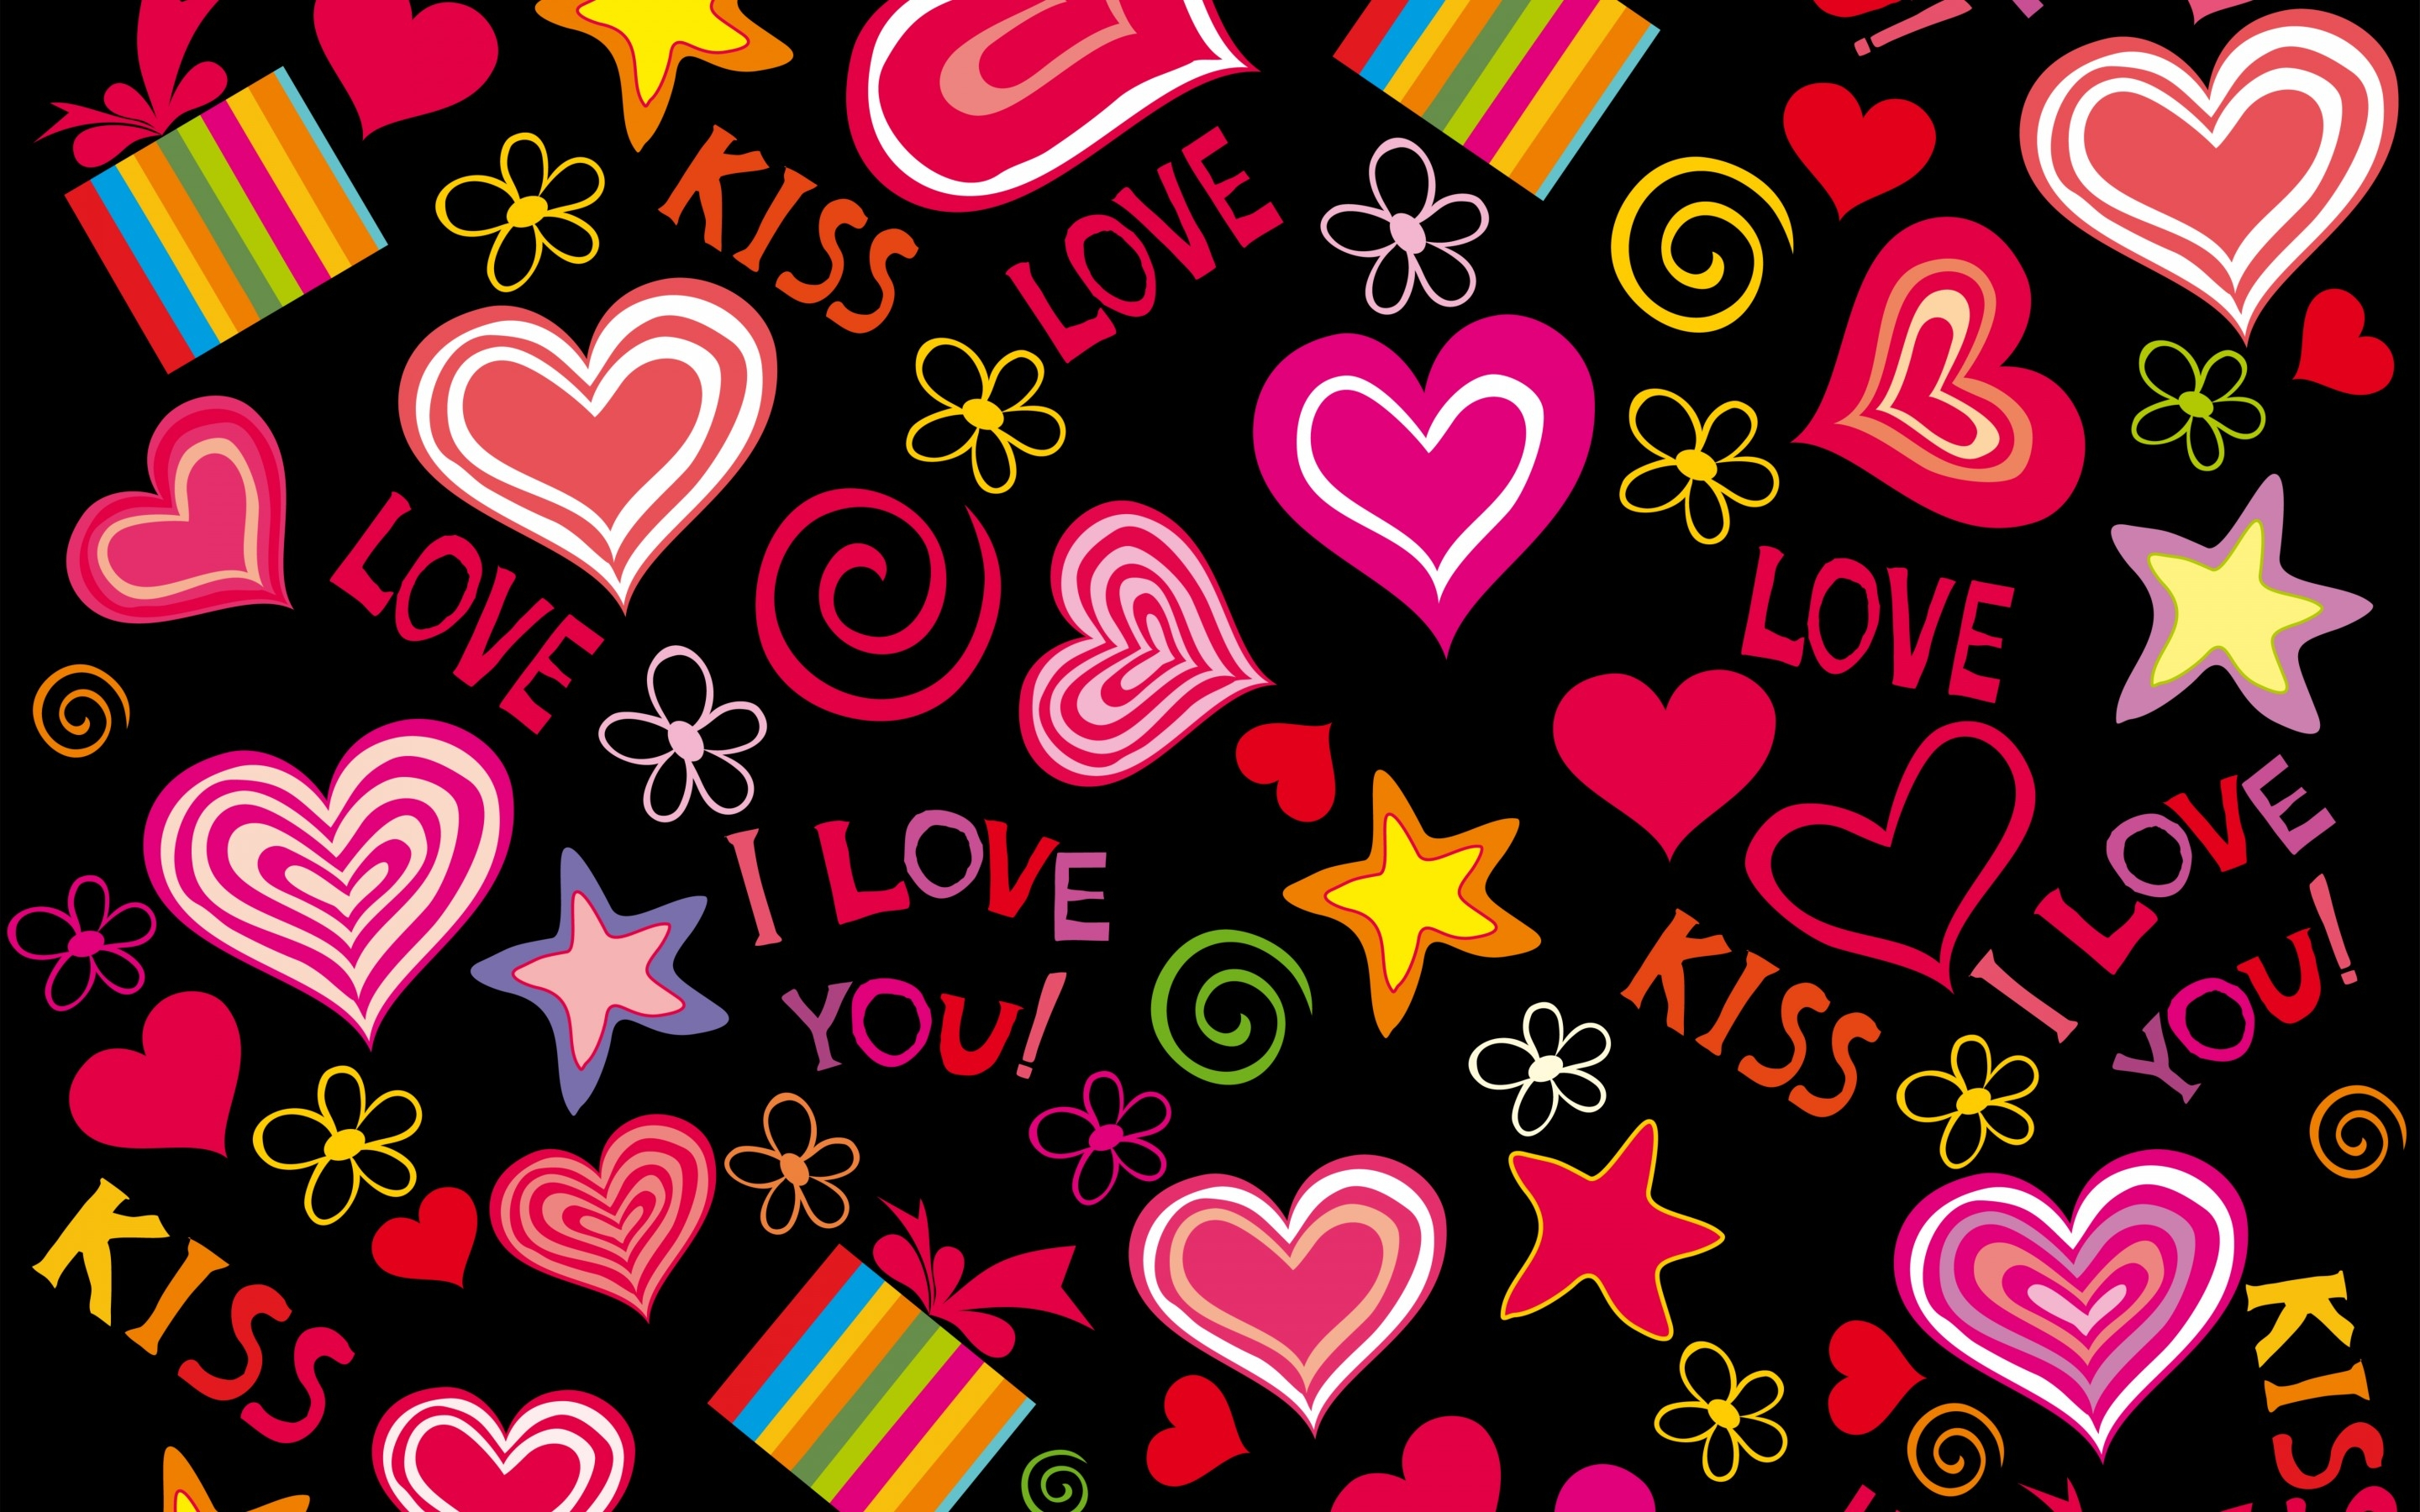 Love Wallpapers In Portuguese : Love Hearts Full HD Papel de Parede and Background Image 2880x1800 ID:676275